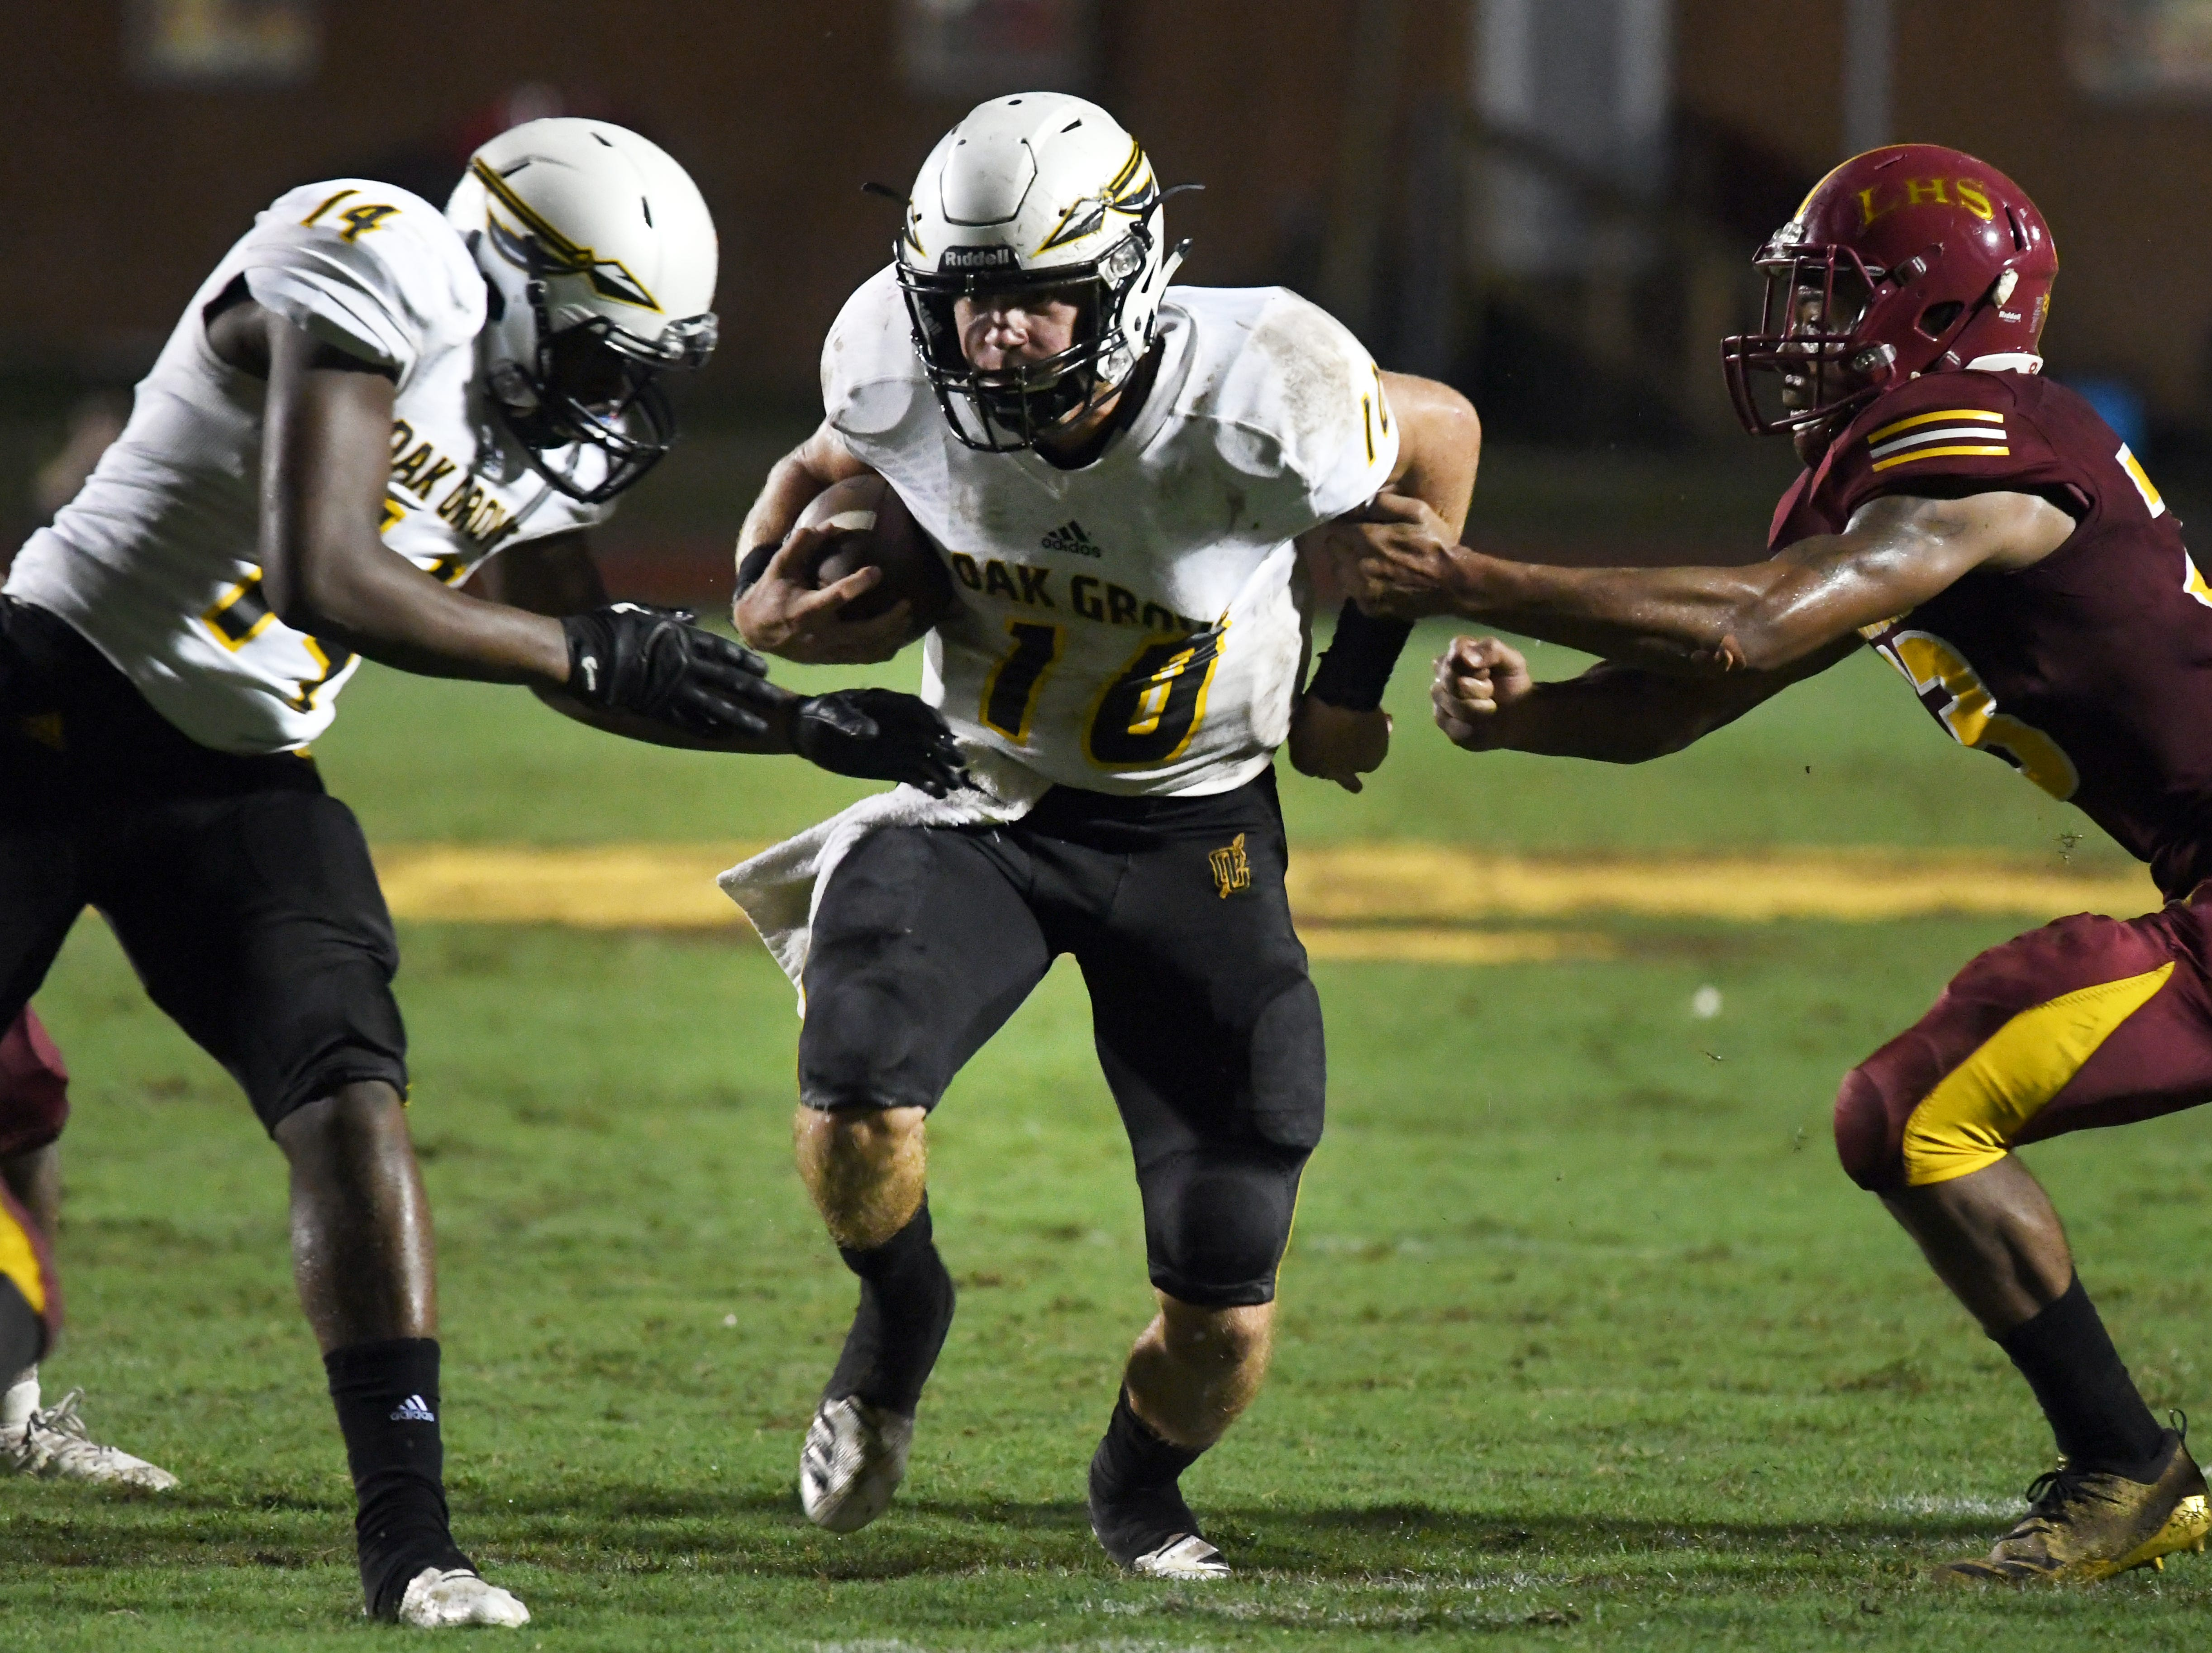 Oak Grove quarterback John Rhys Plumlee carries the ball in a game at Laurel on Friday, August 31, 2018.